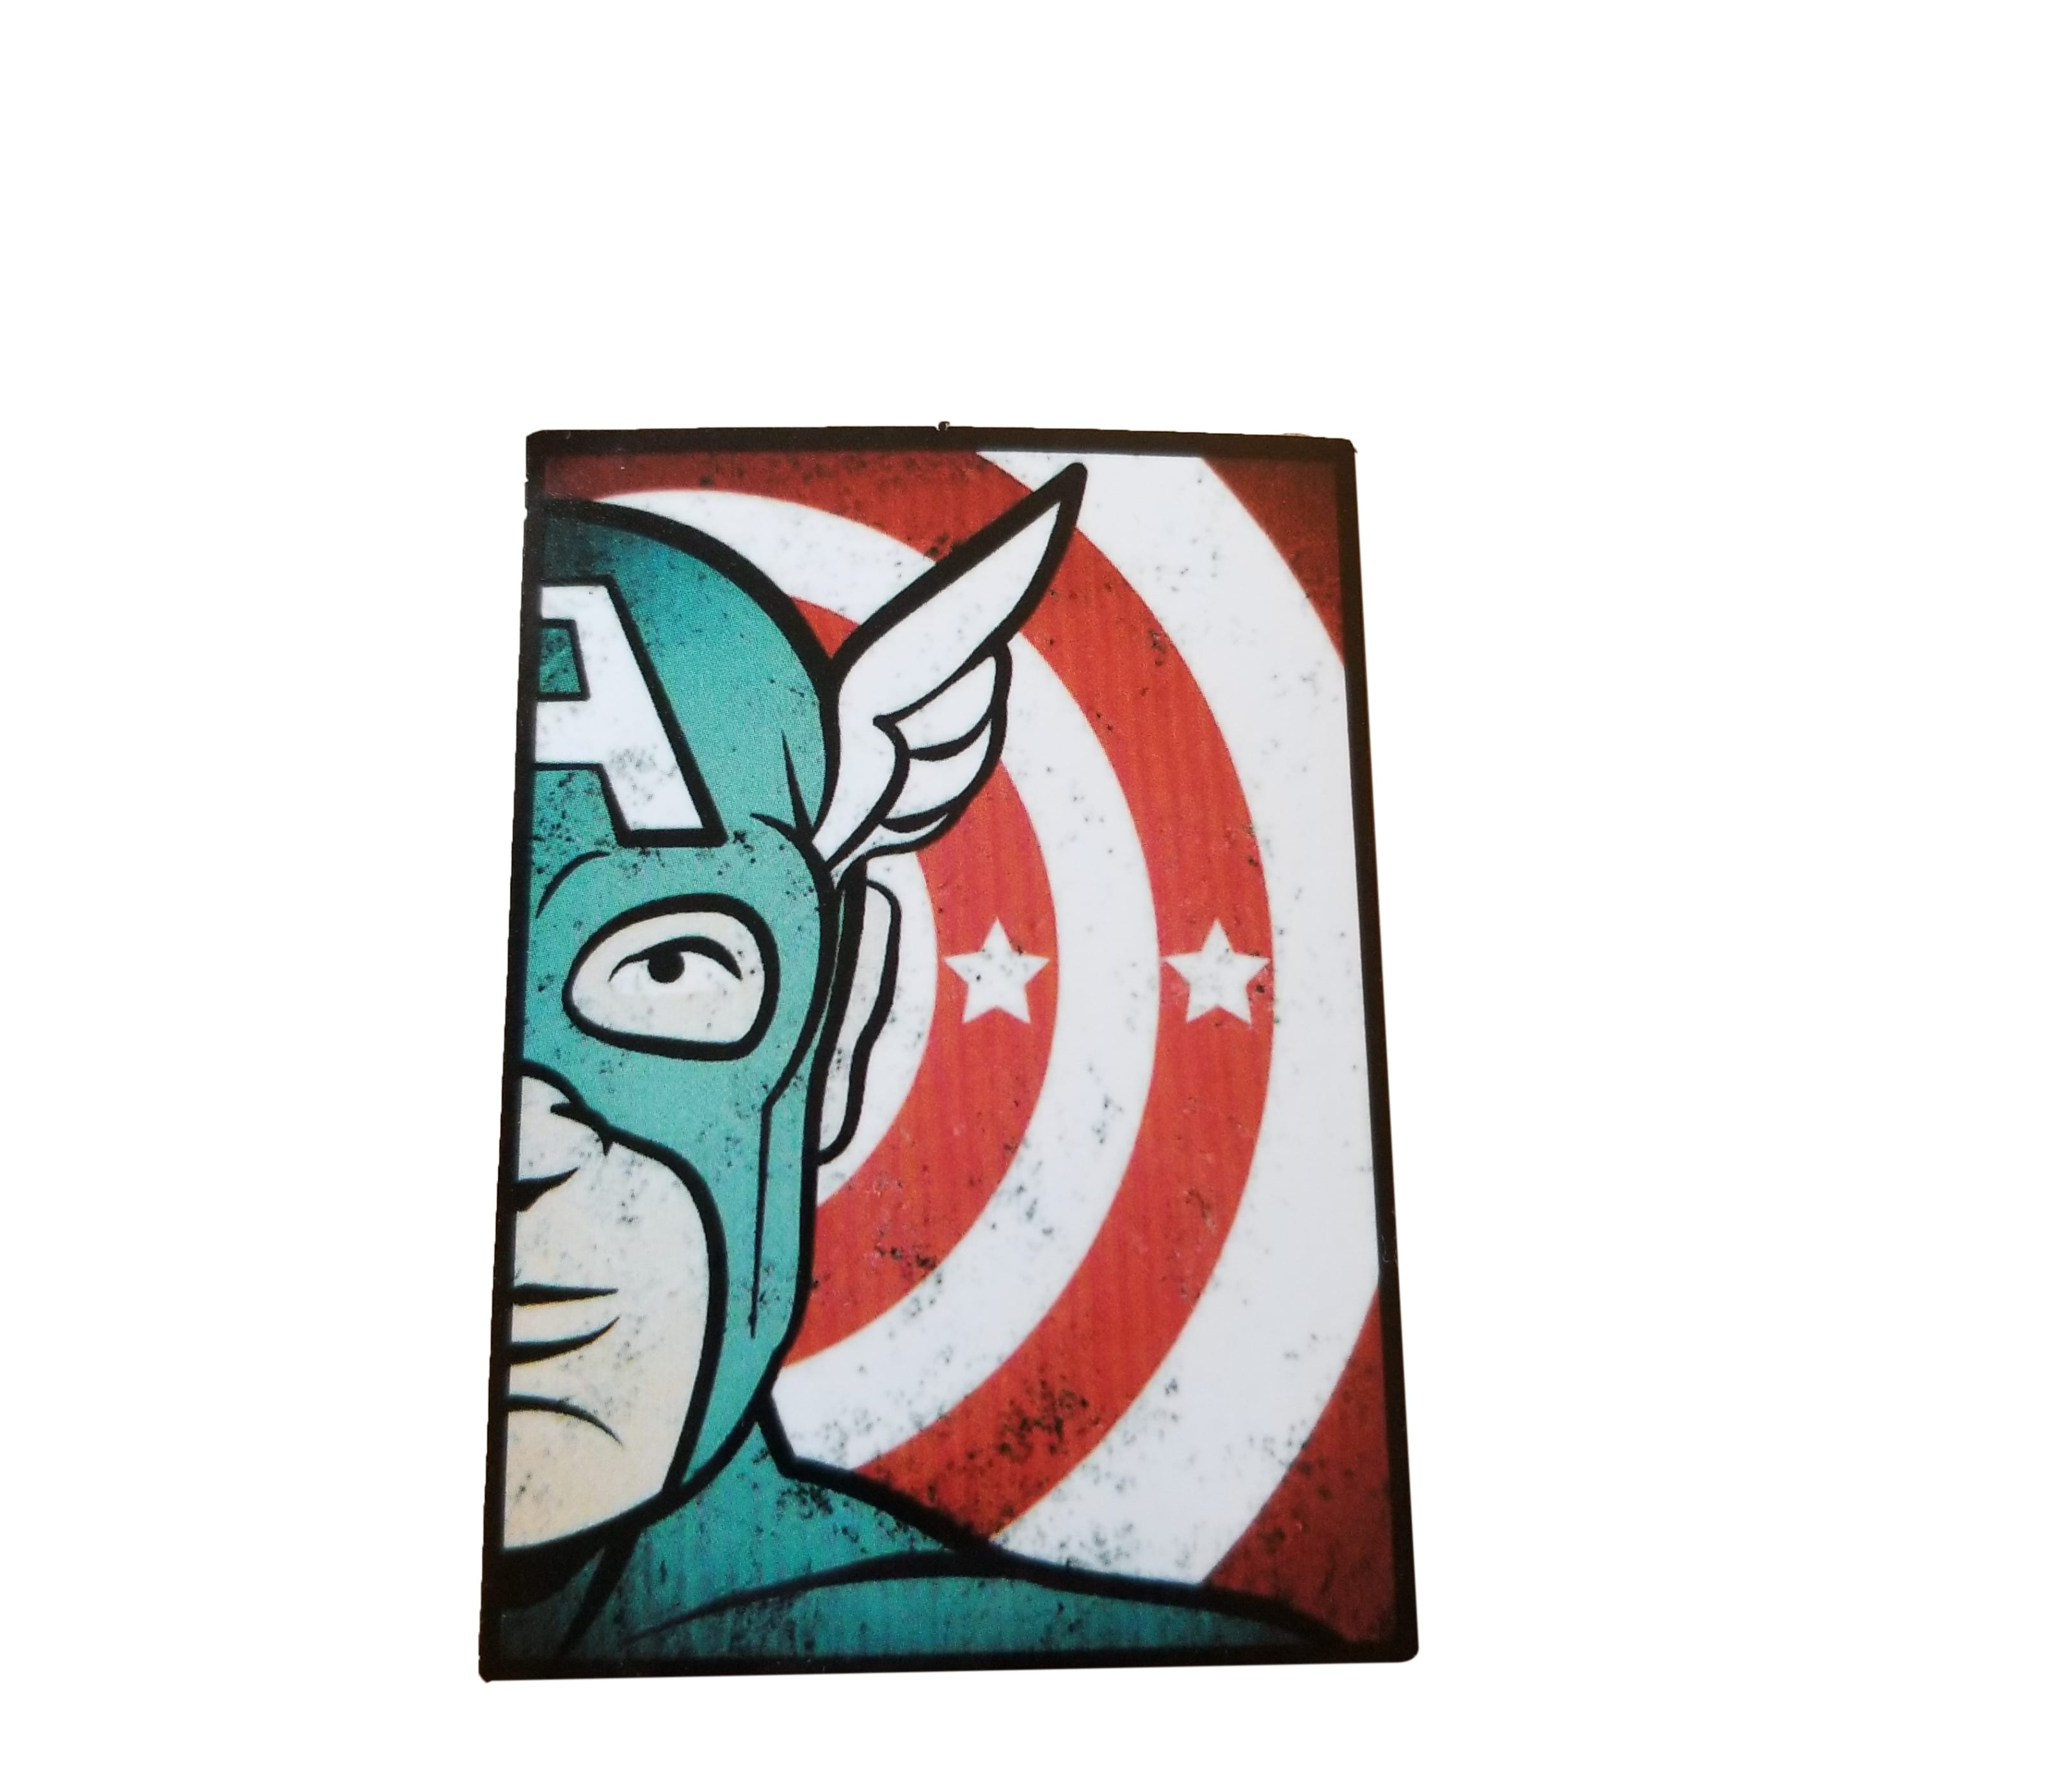 half of Captain america's face, with his shield in the background